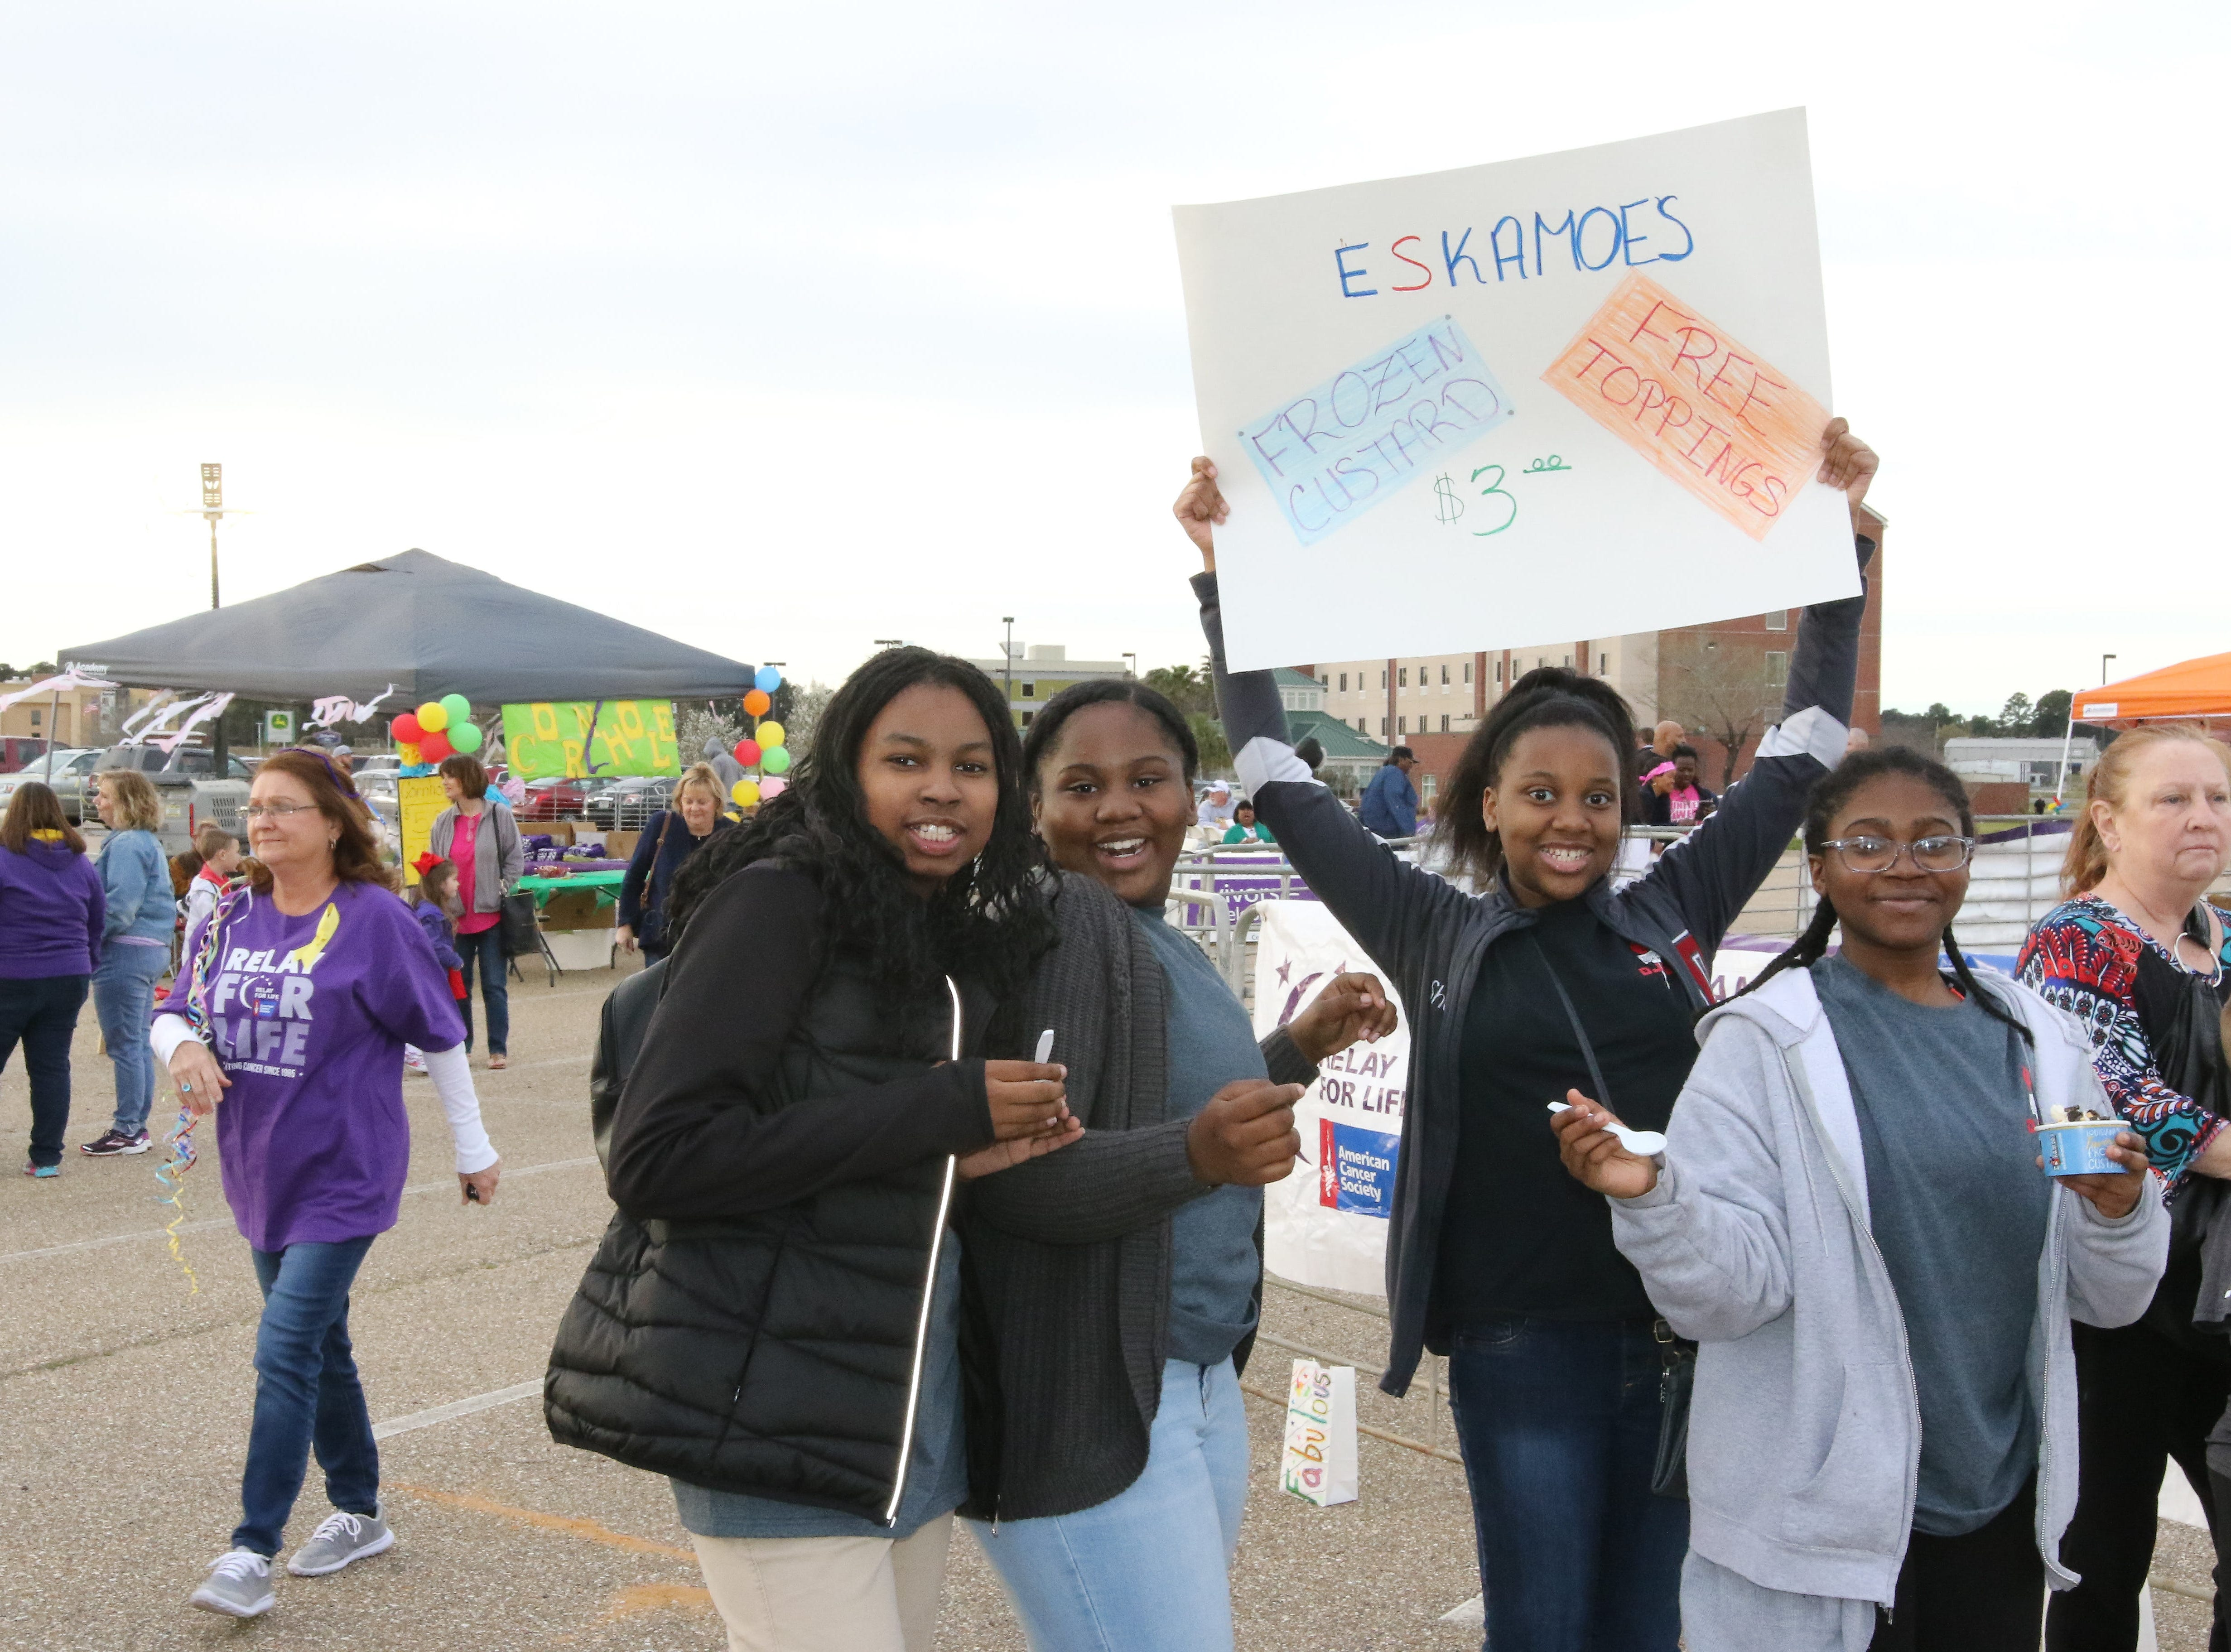 American Cancer Society's 2019 Relay for Life was held at the Ike Hamilton Expo Center on Friday, March 15.